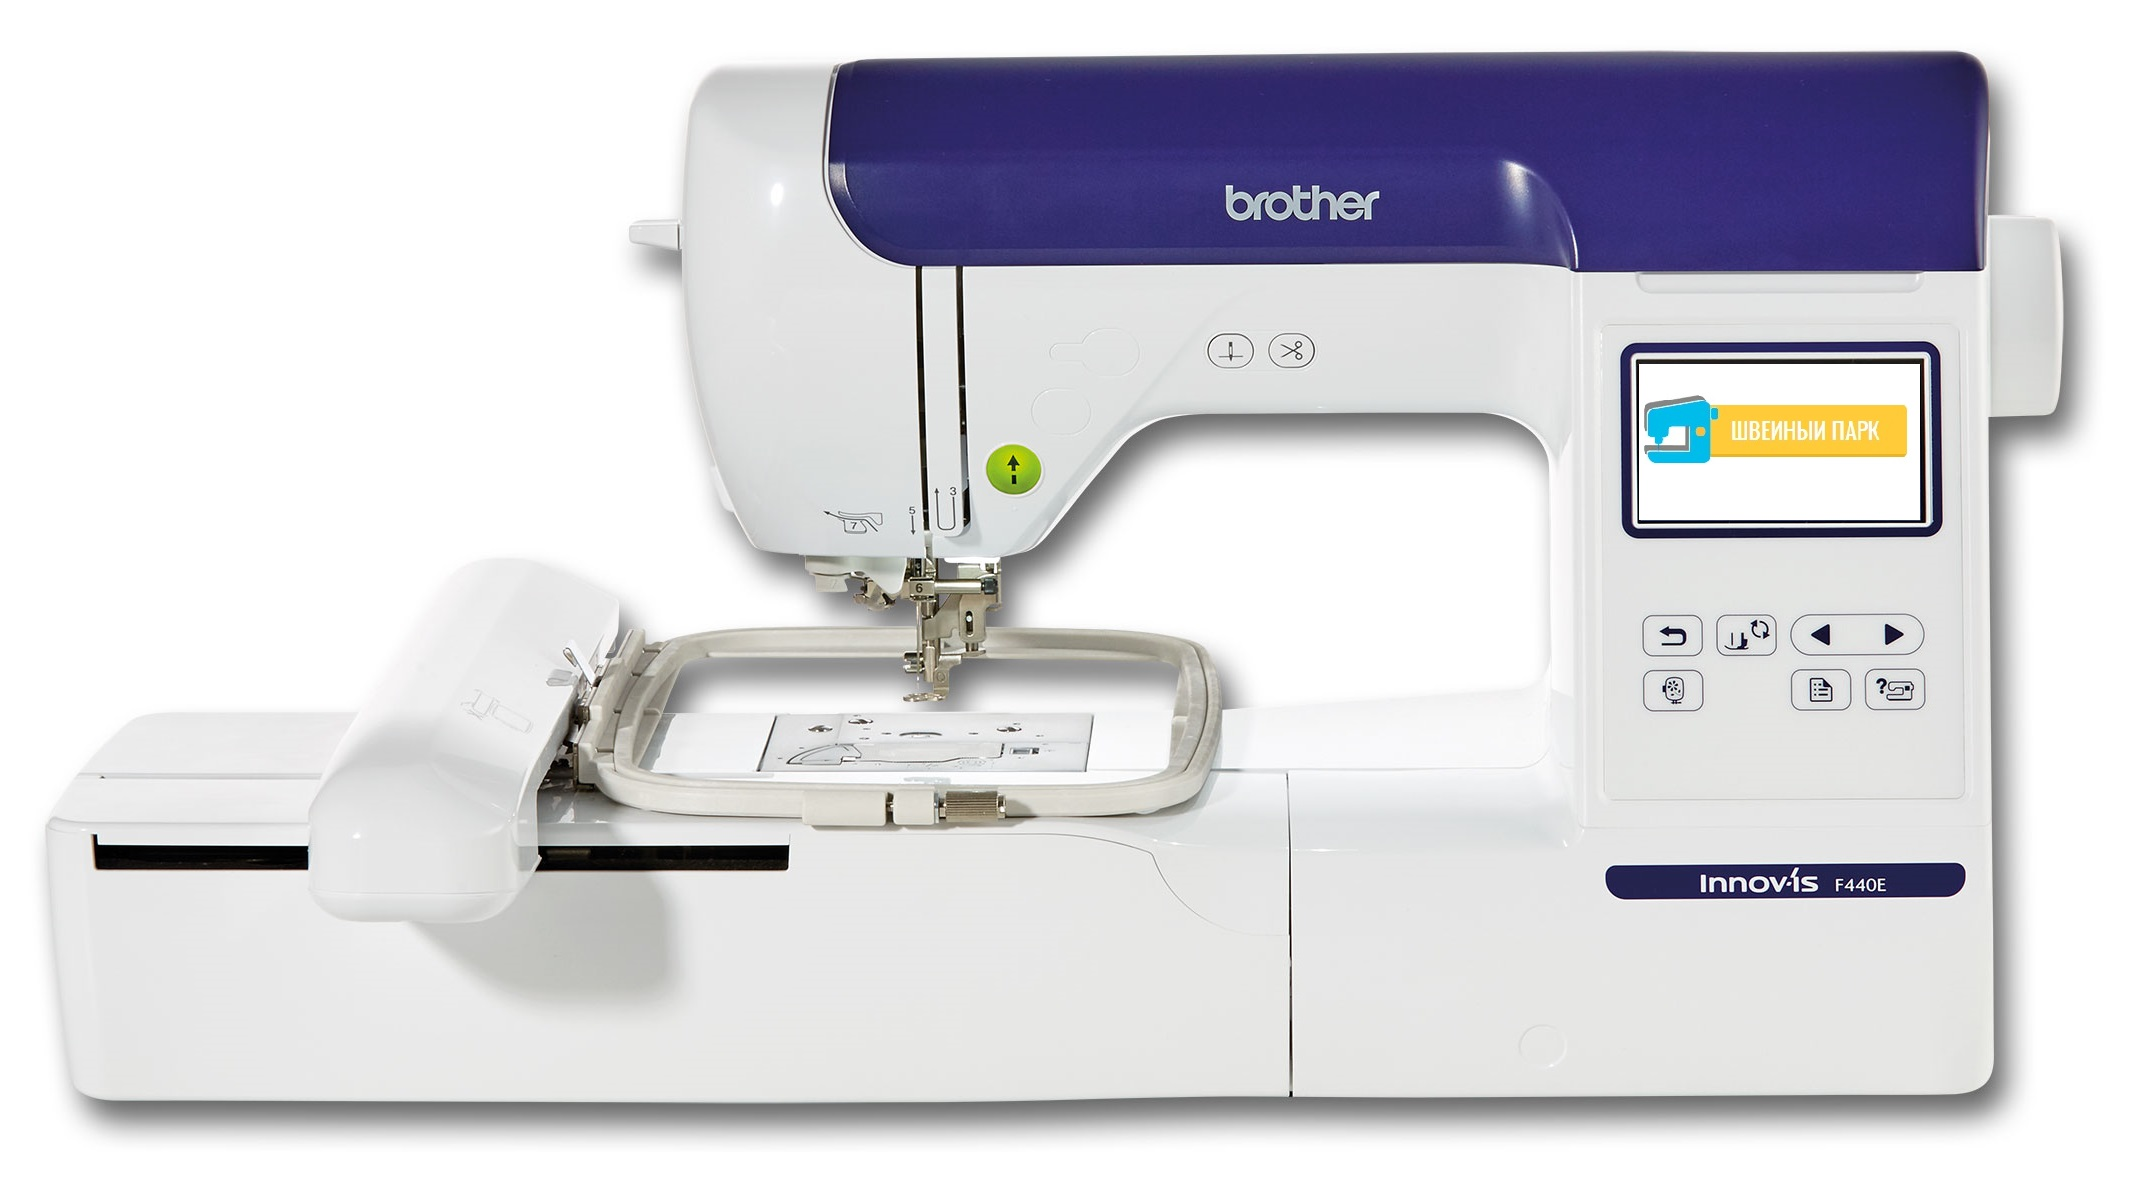 Brother Innov-is F440